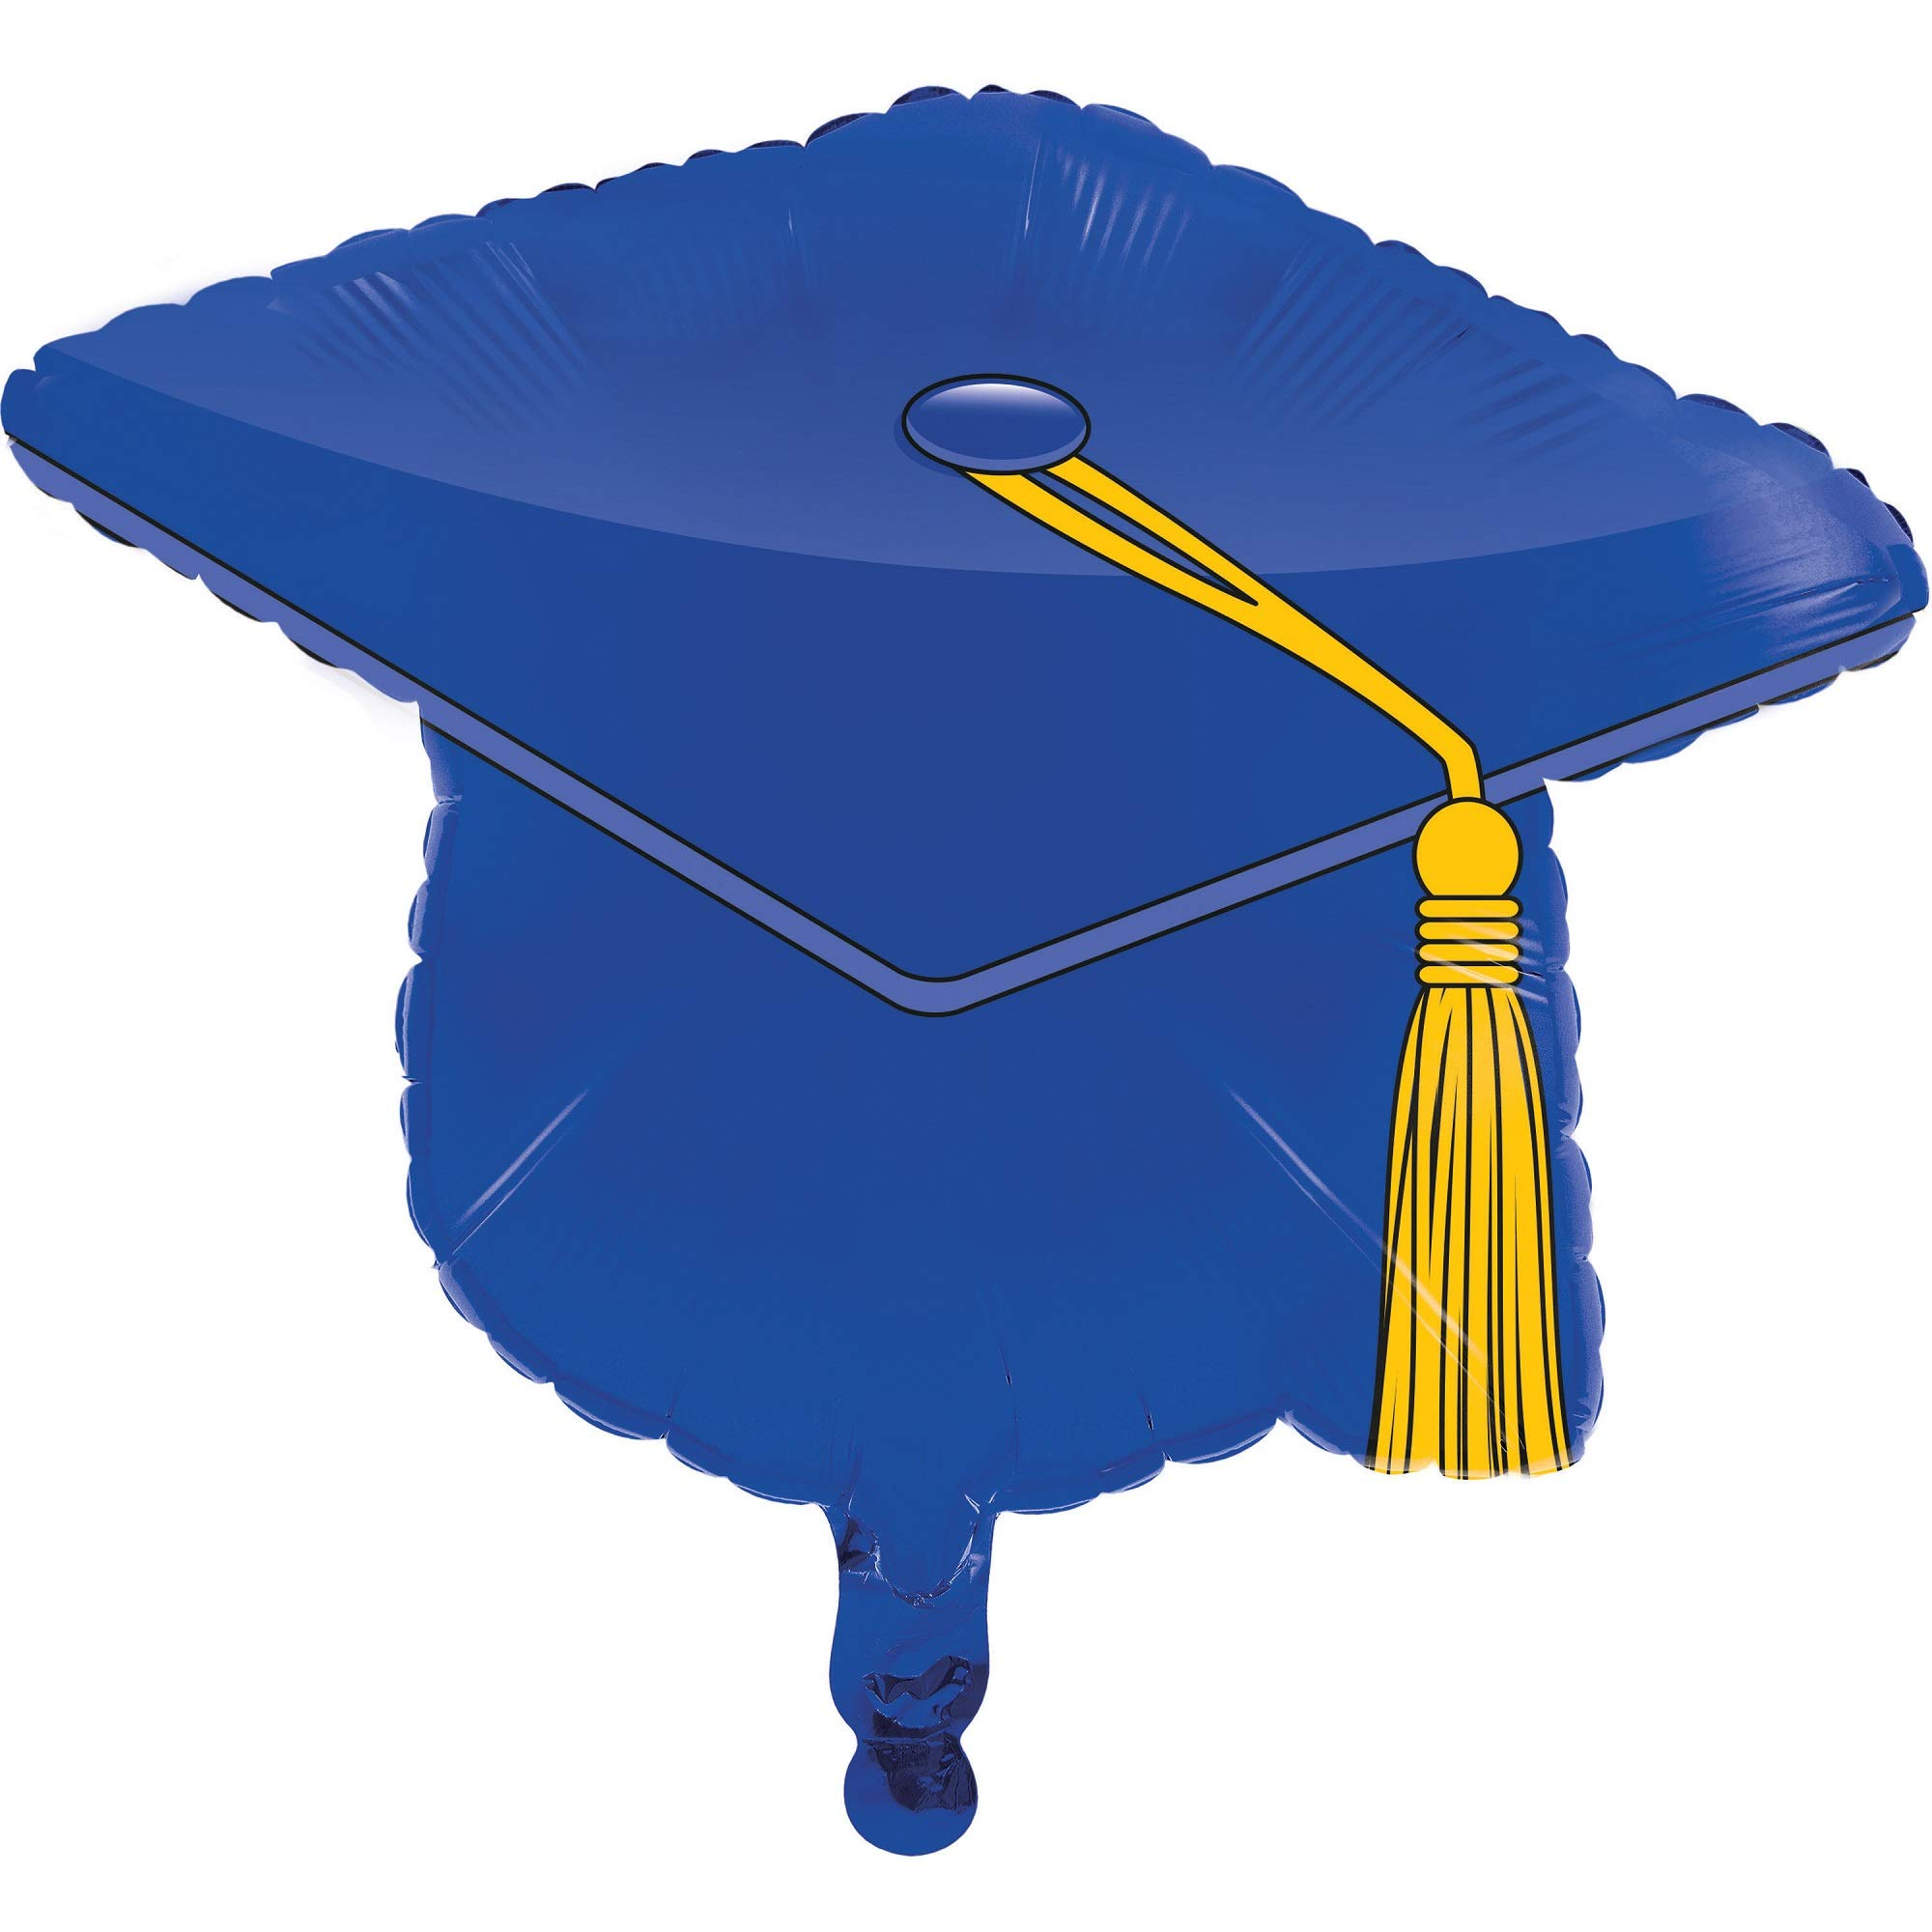 Set of 10 Blue and Yellow Graduation Day Mortarboard Party Balloons 7.75''